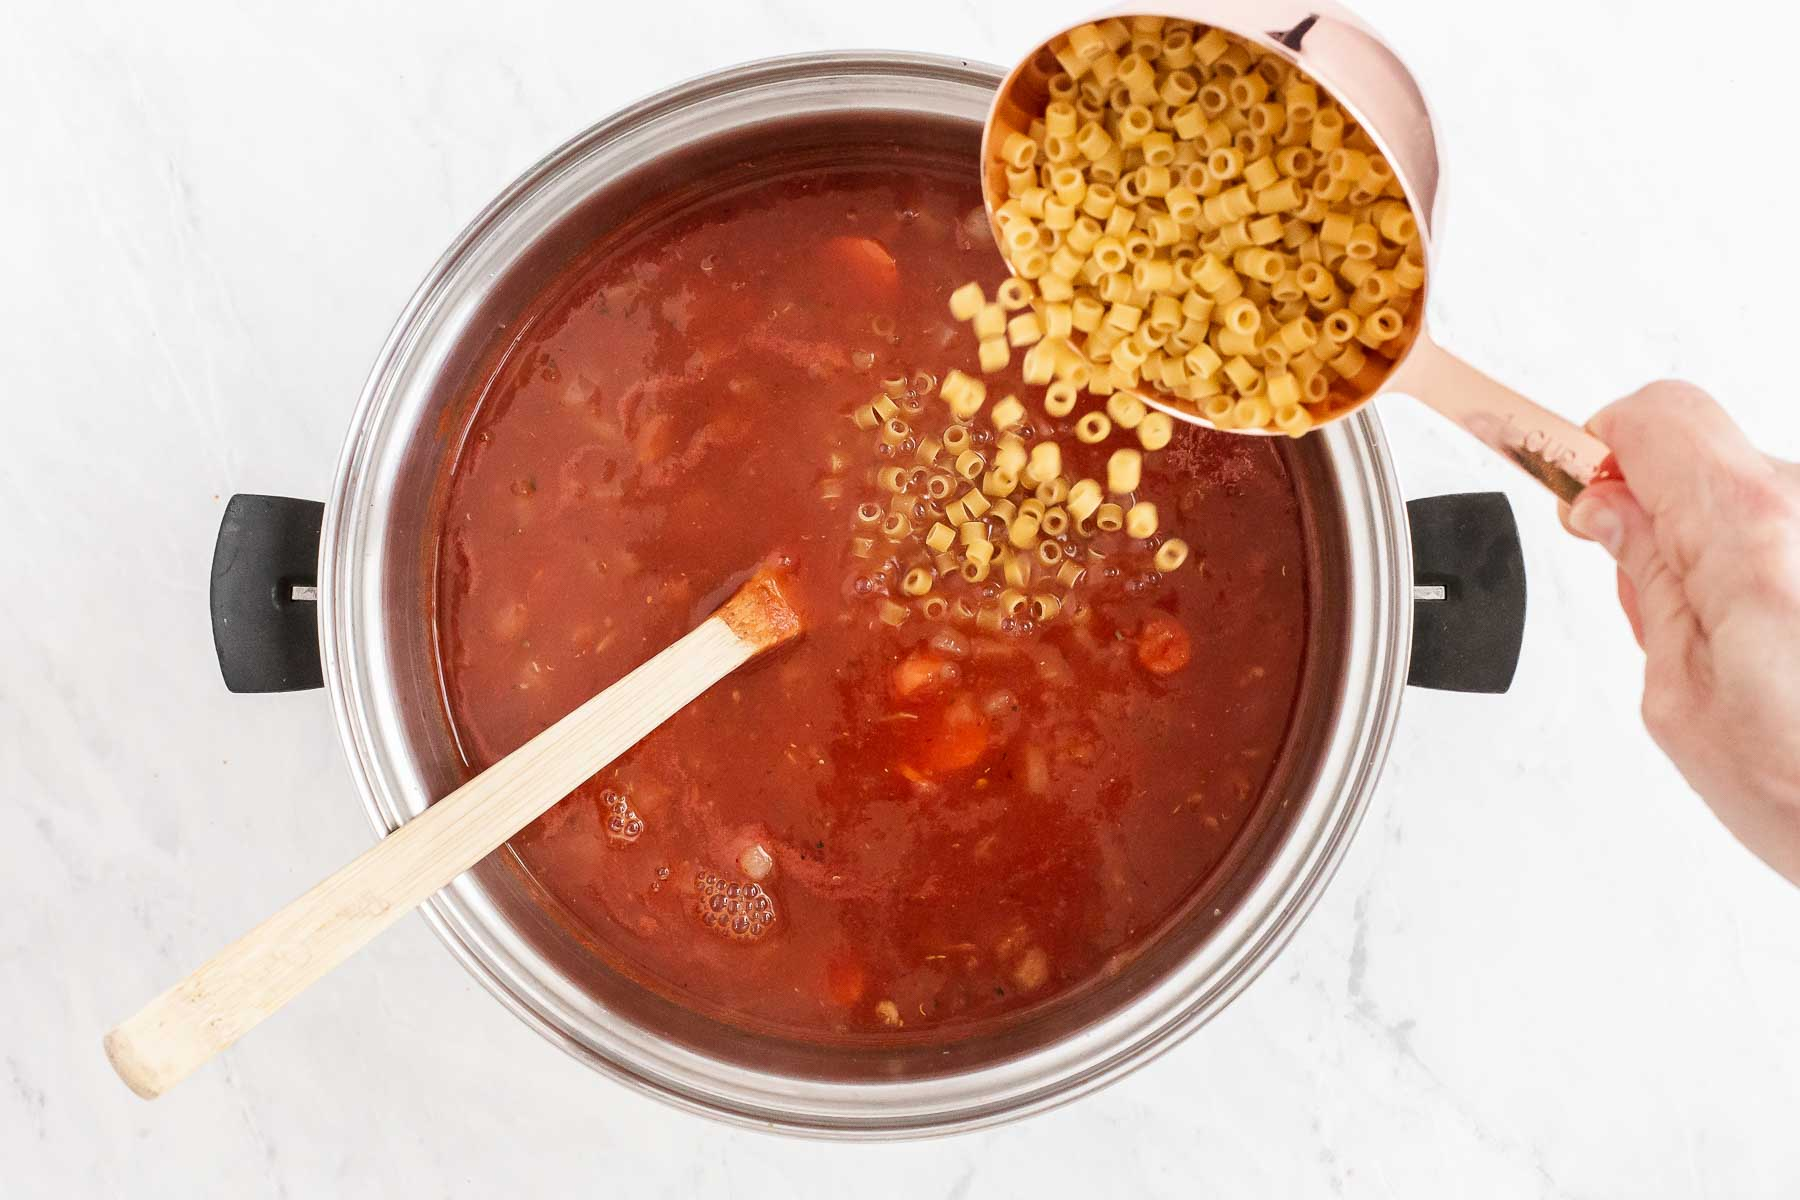 Pouring pasta into red tomato soup.